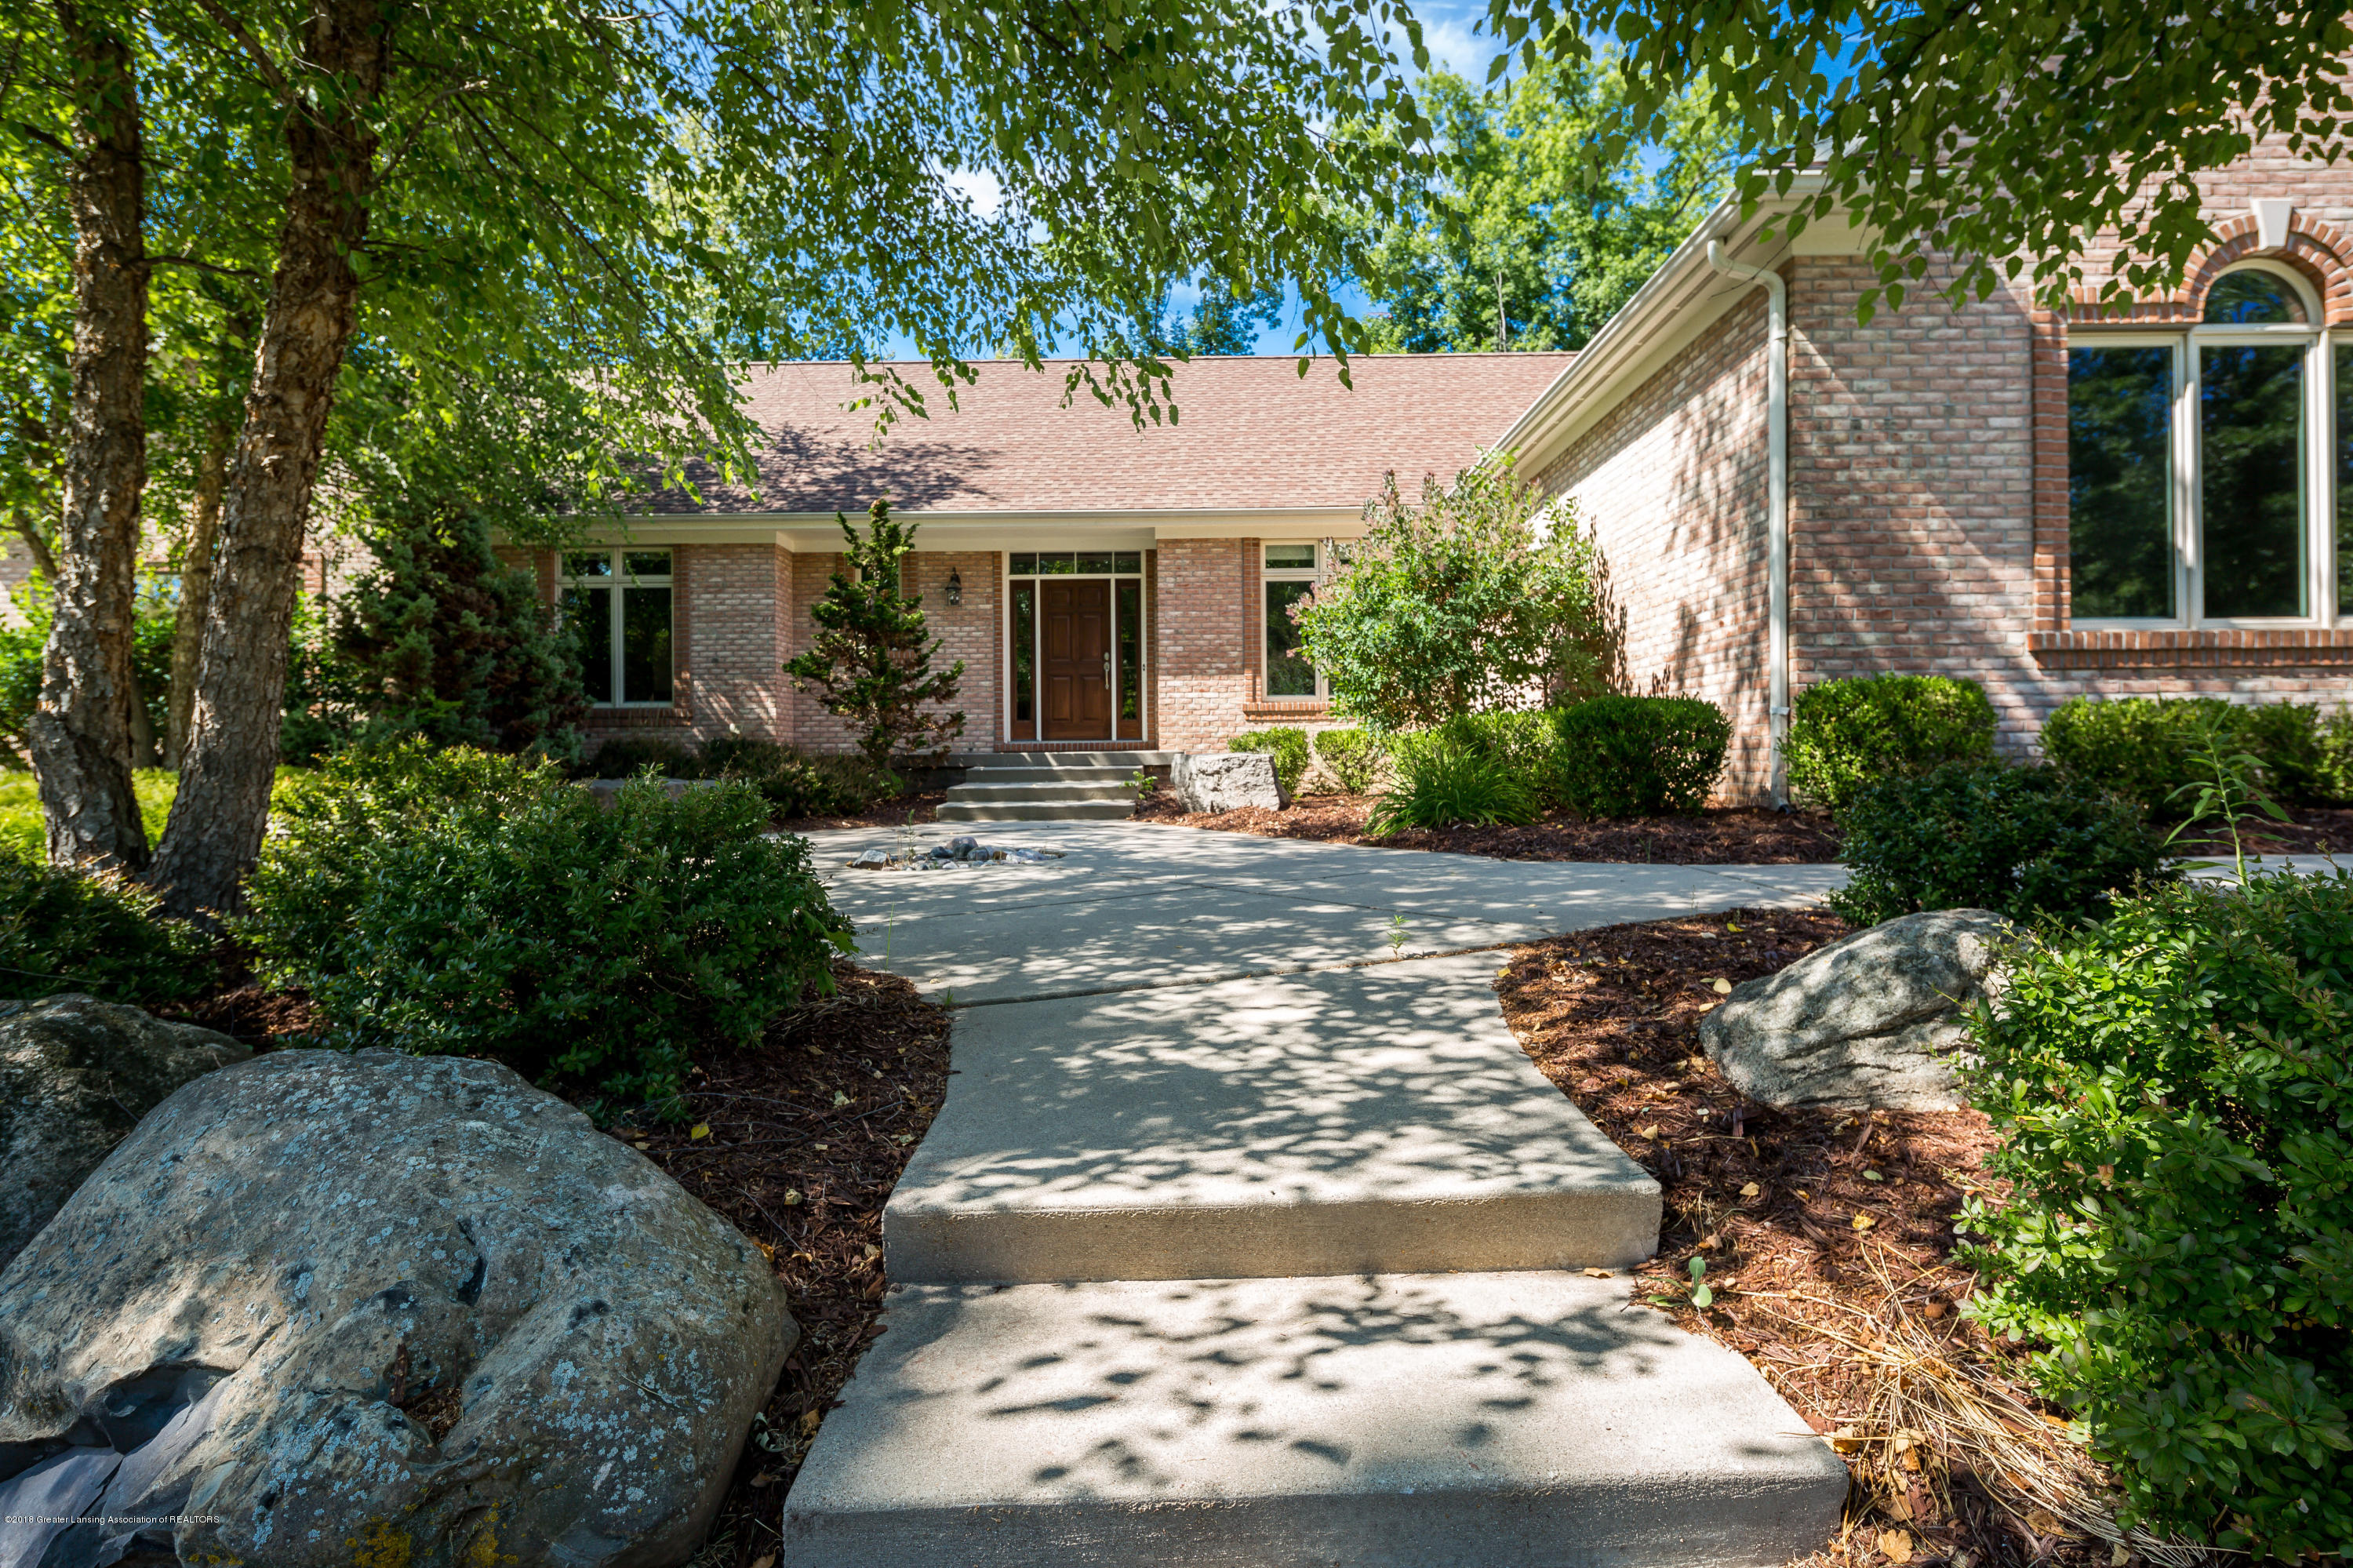 2016 Belwood Dr - 20180710-942A3202 - 8